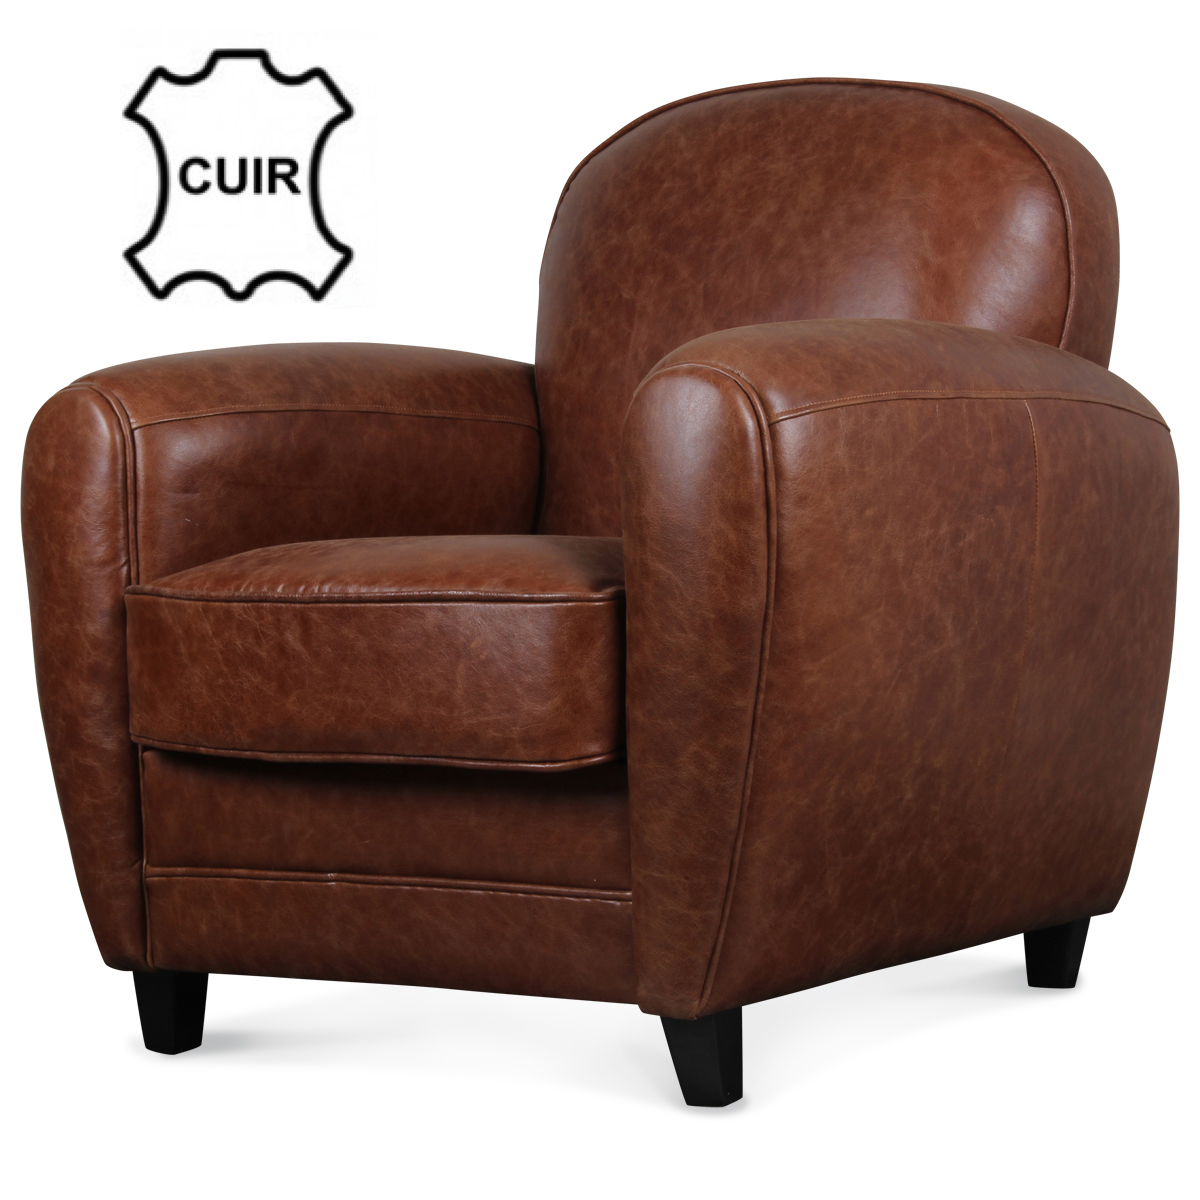 fauteuil club en cuir marron vintage industriel demeure et jardin. Black Bedroom Furniture Sets. Home Design Ideas